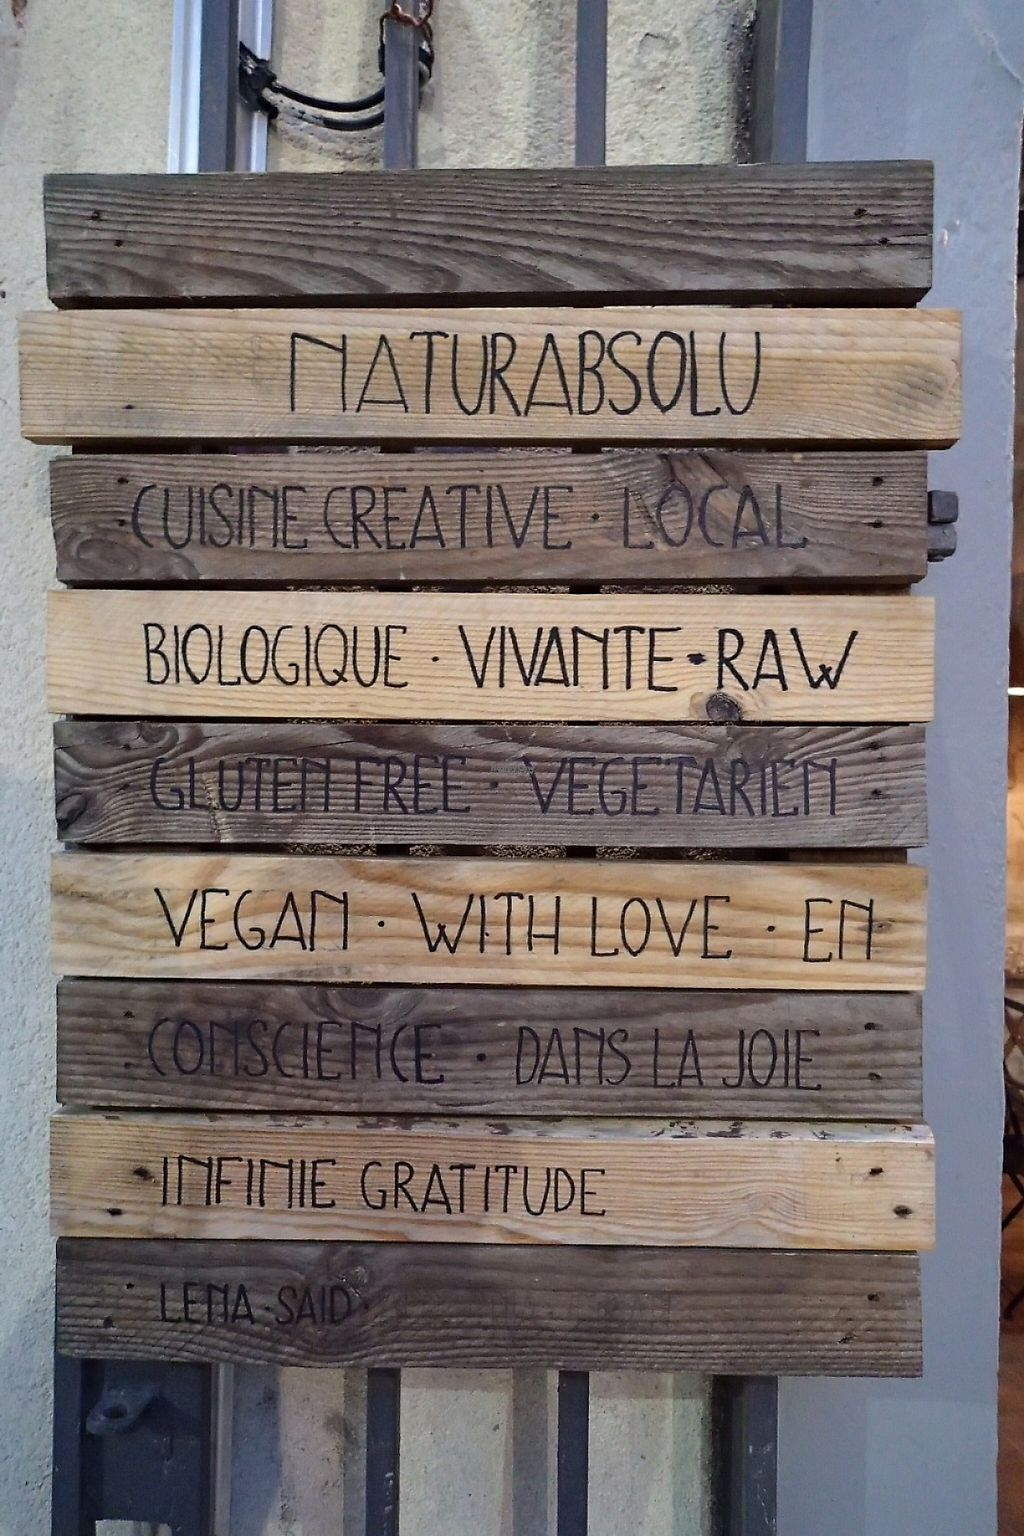 """Photo of Naturabsolu  by <a href=""""/members/profile/Tyrone"""">Tyrone</a> <br/>Wooden sign-boards outside the restaurant <br/> April 10, 2017  - <a href='/contact/abuse/image/74572/246704'>Report</a>"""